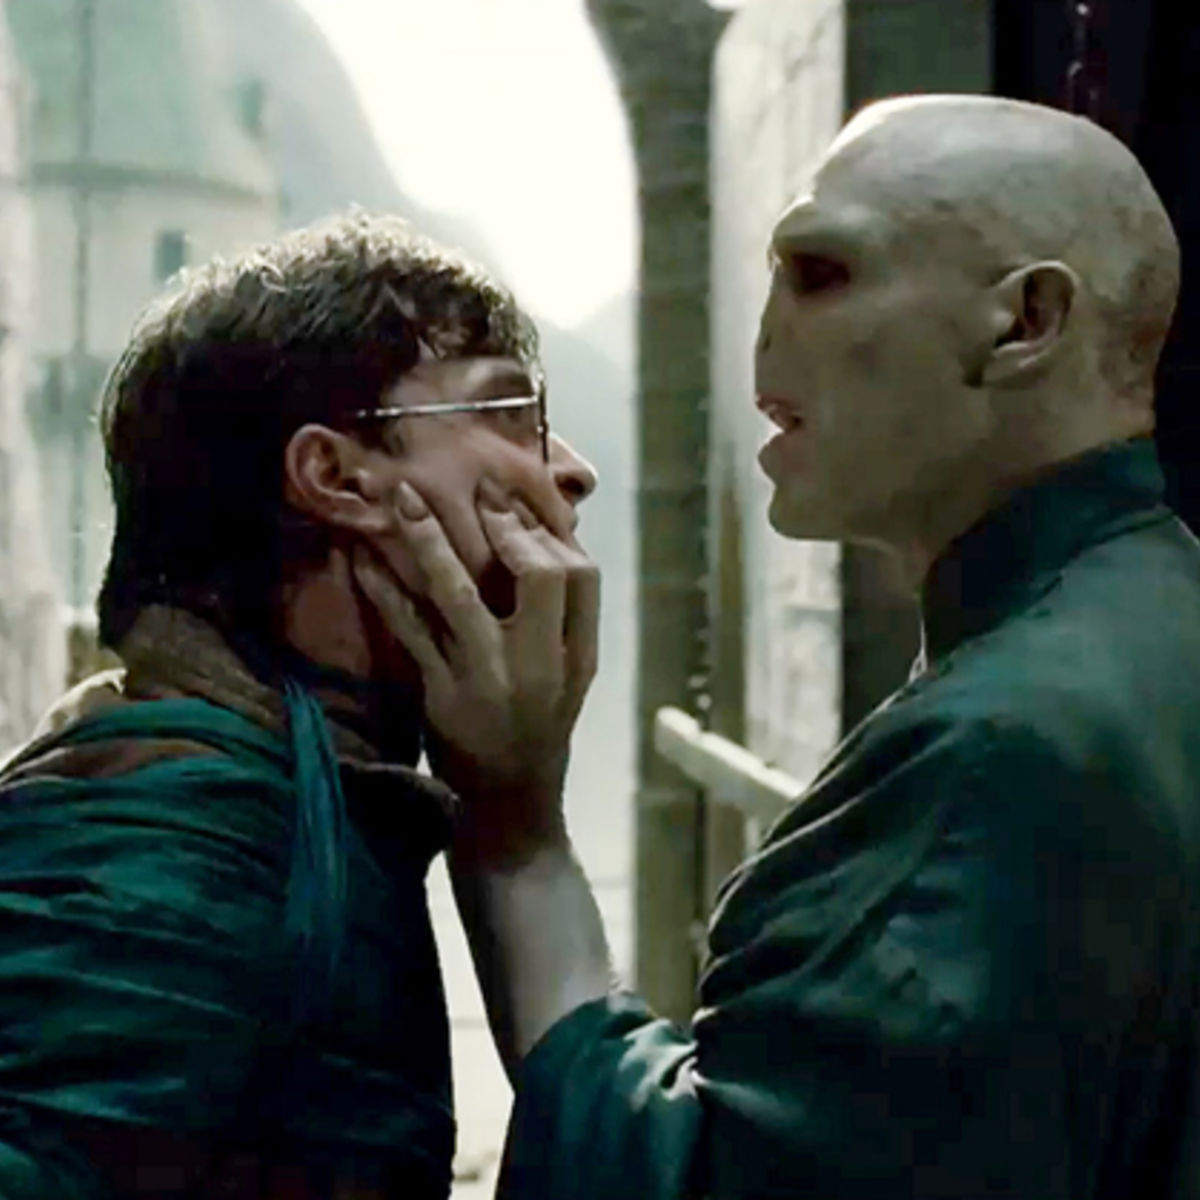 harry-potter-and-the-deathly-hallows-part-2.jpg